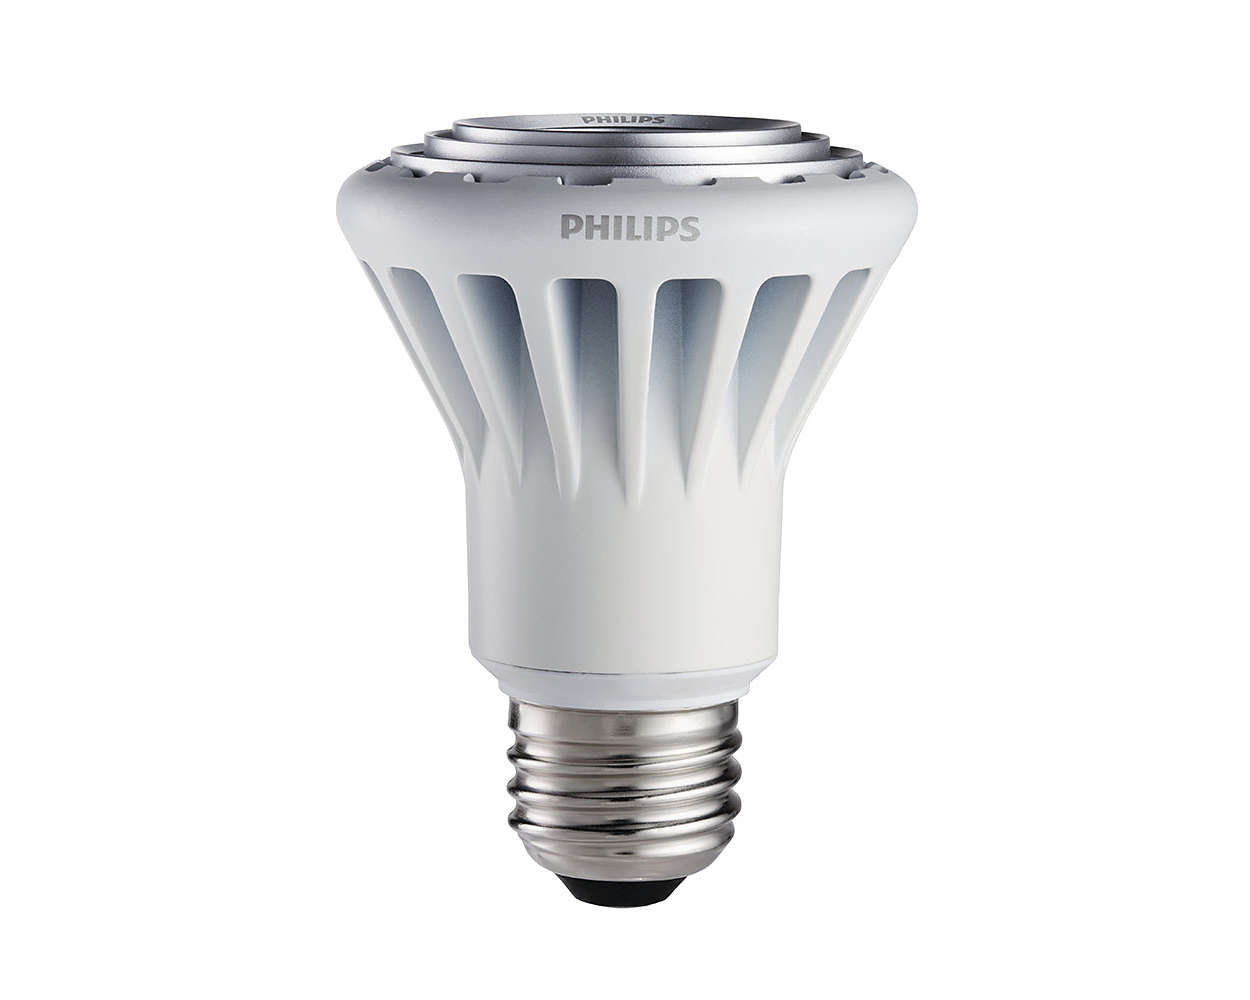 AmbientLED Energy saving indoor flood light 046677418427 | Philips